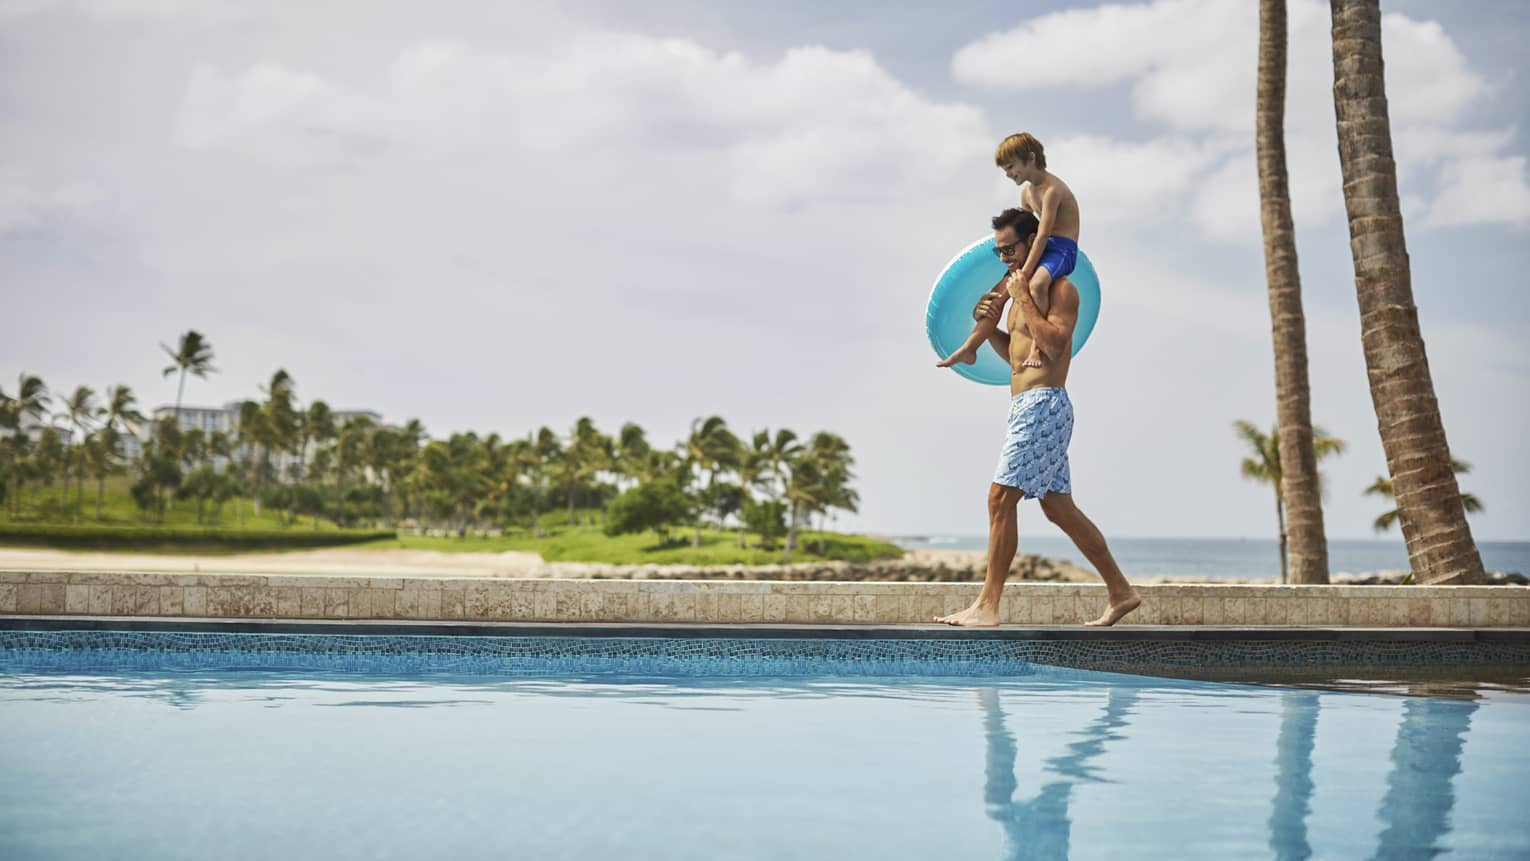 Man carries young boy on shoulders, blue inner tube as they walk by outdoor swimming pool